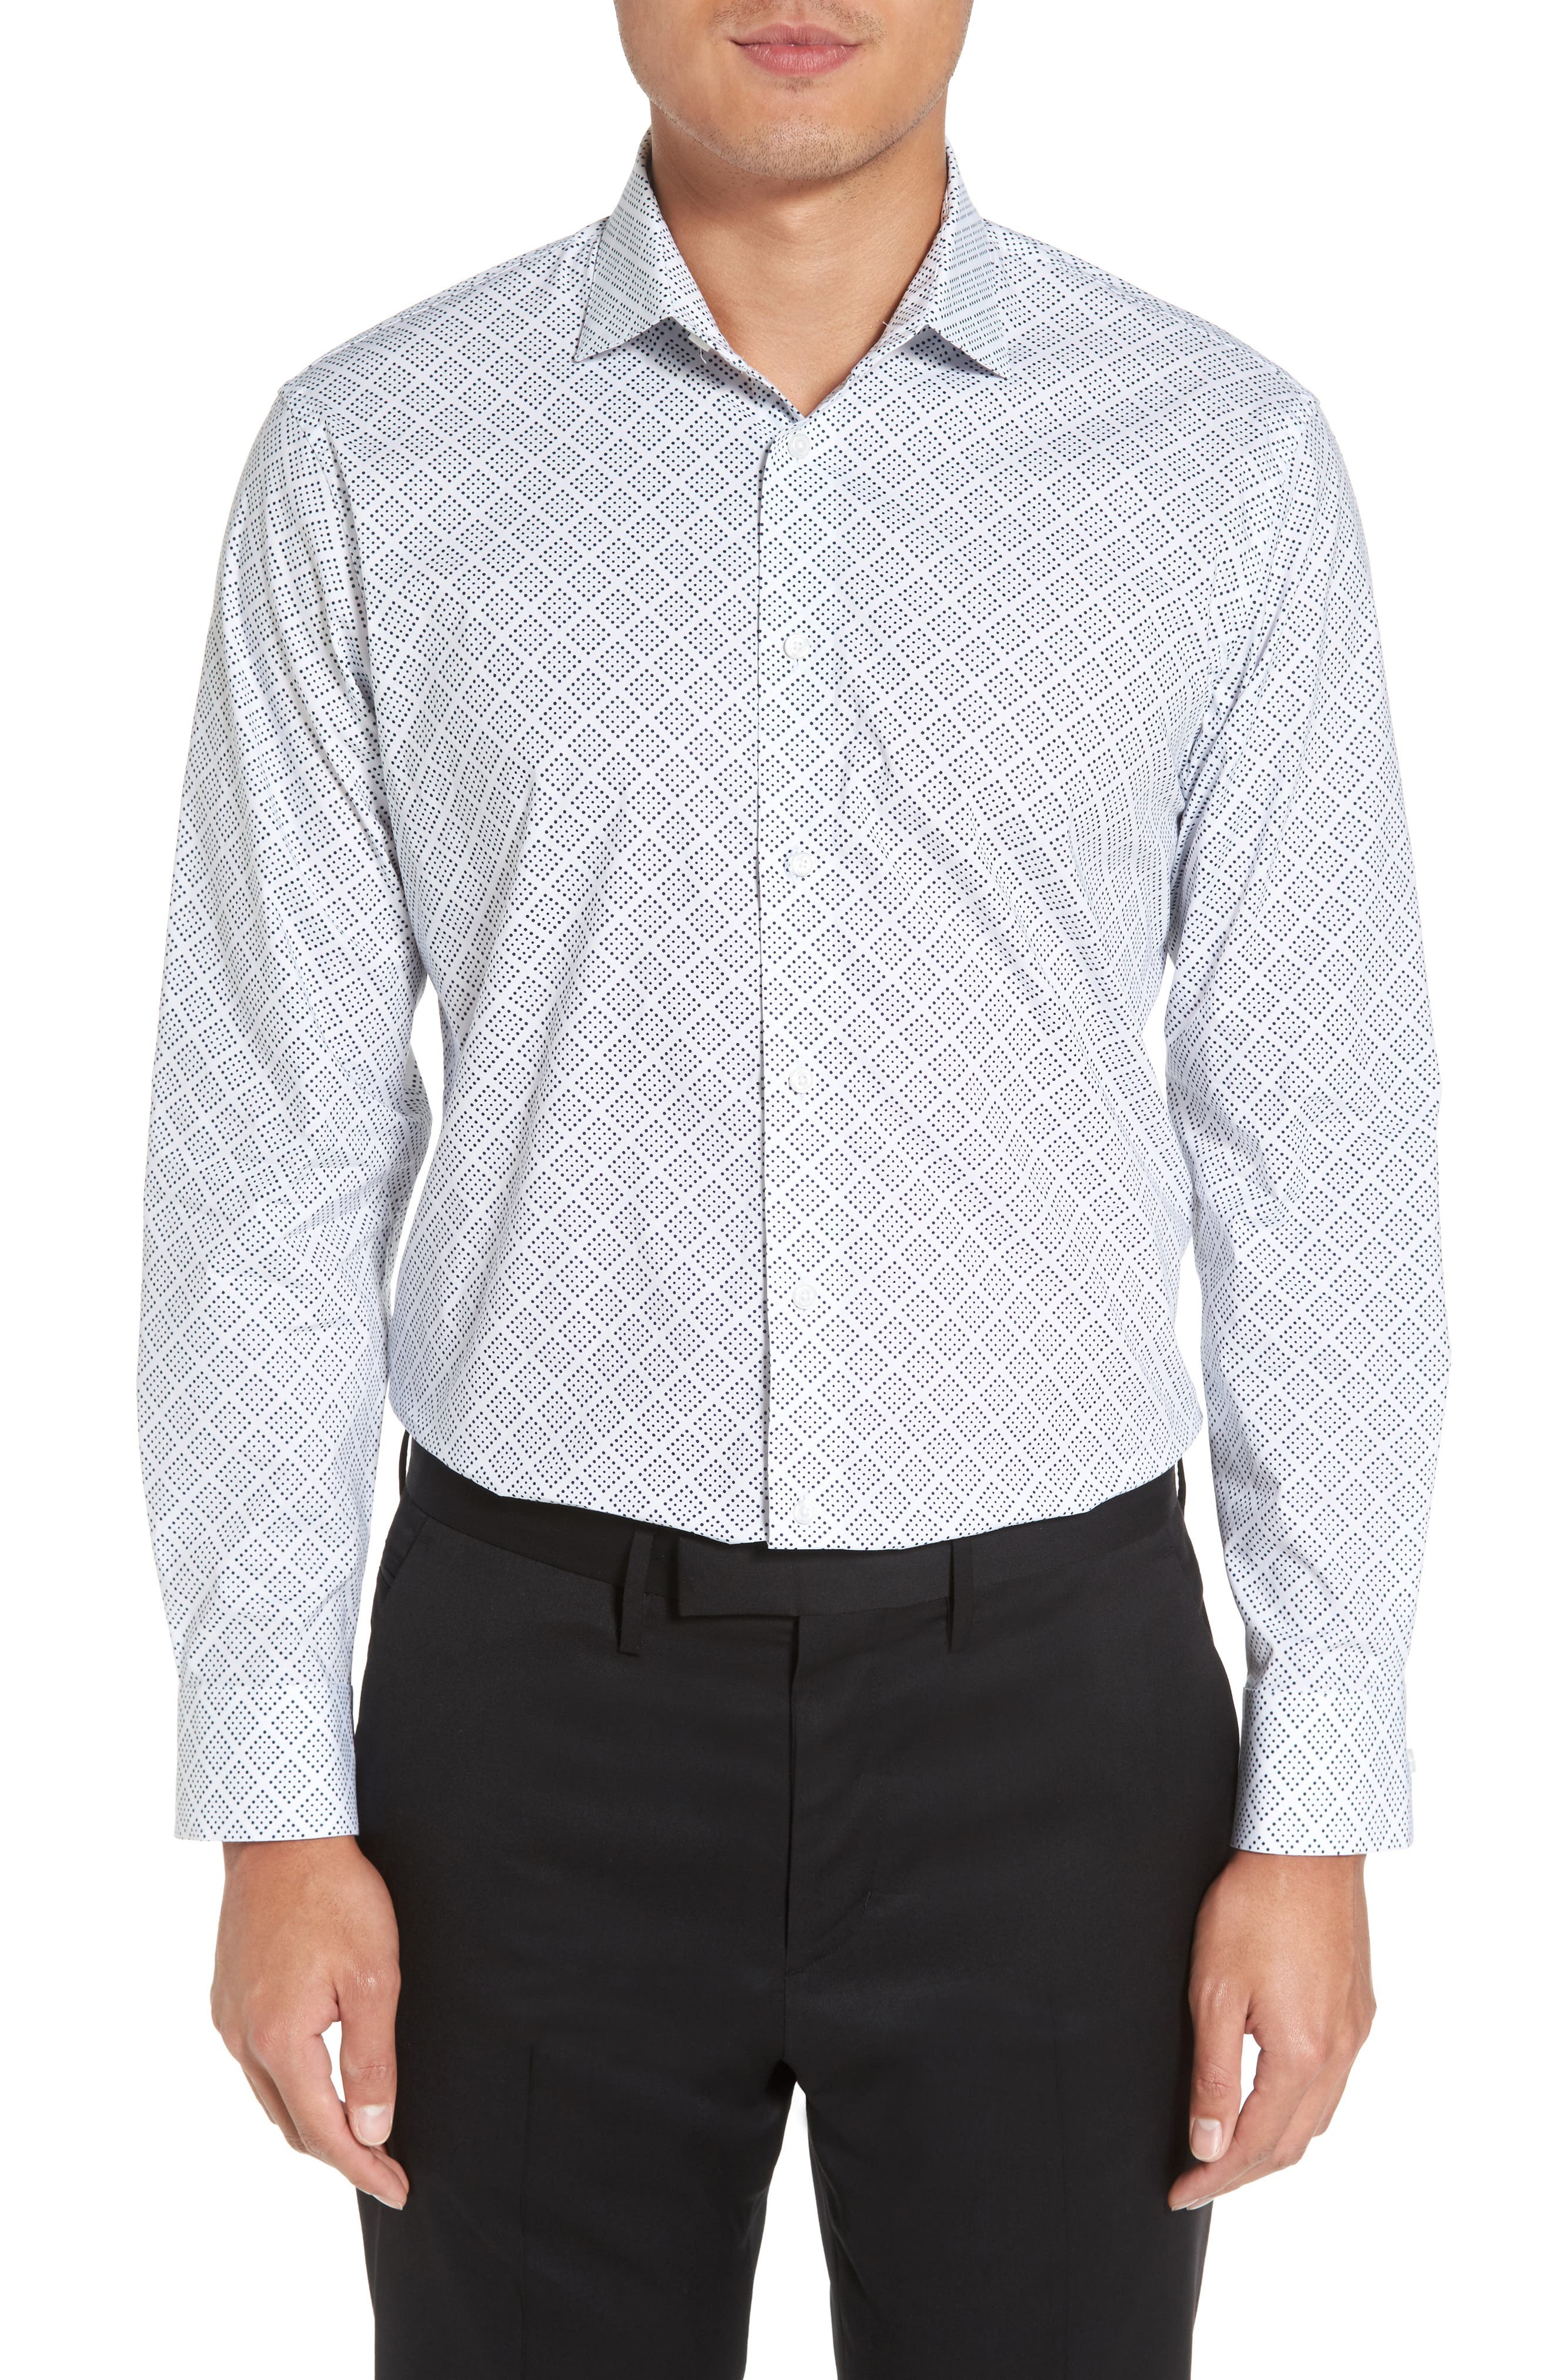 Trim Fit Non-Iron Graphic Stretch Dress Shirt,                         Main,                         color, 410